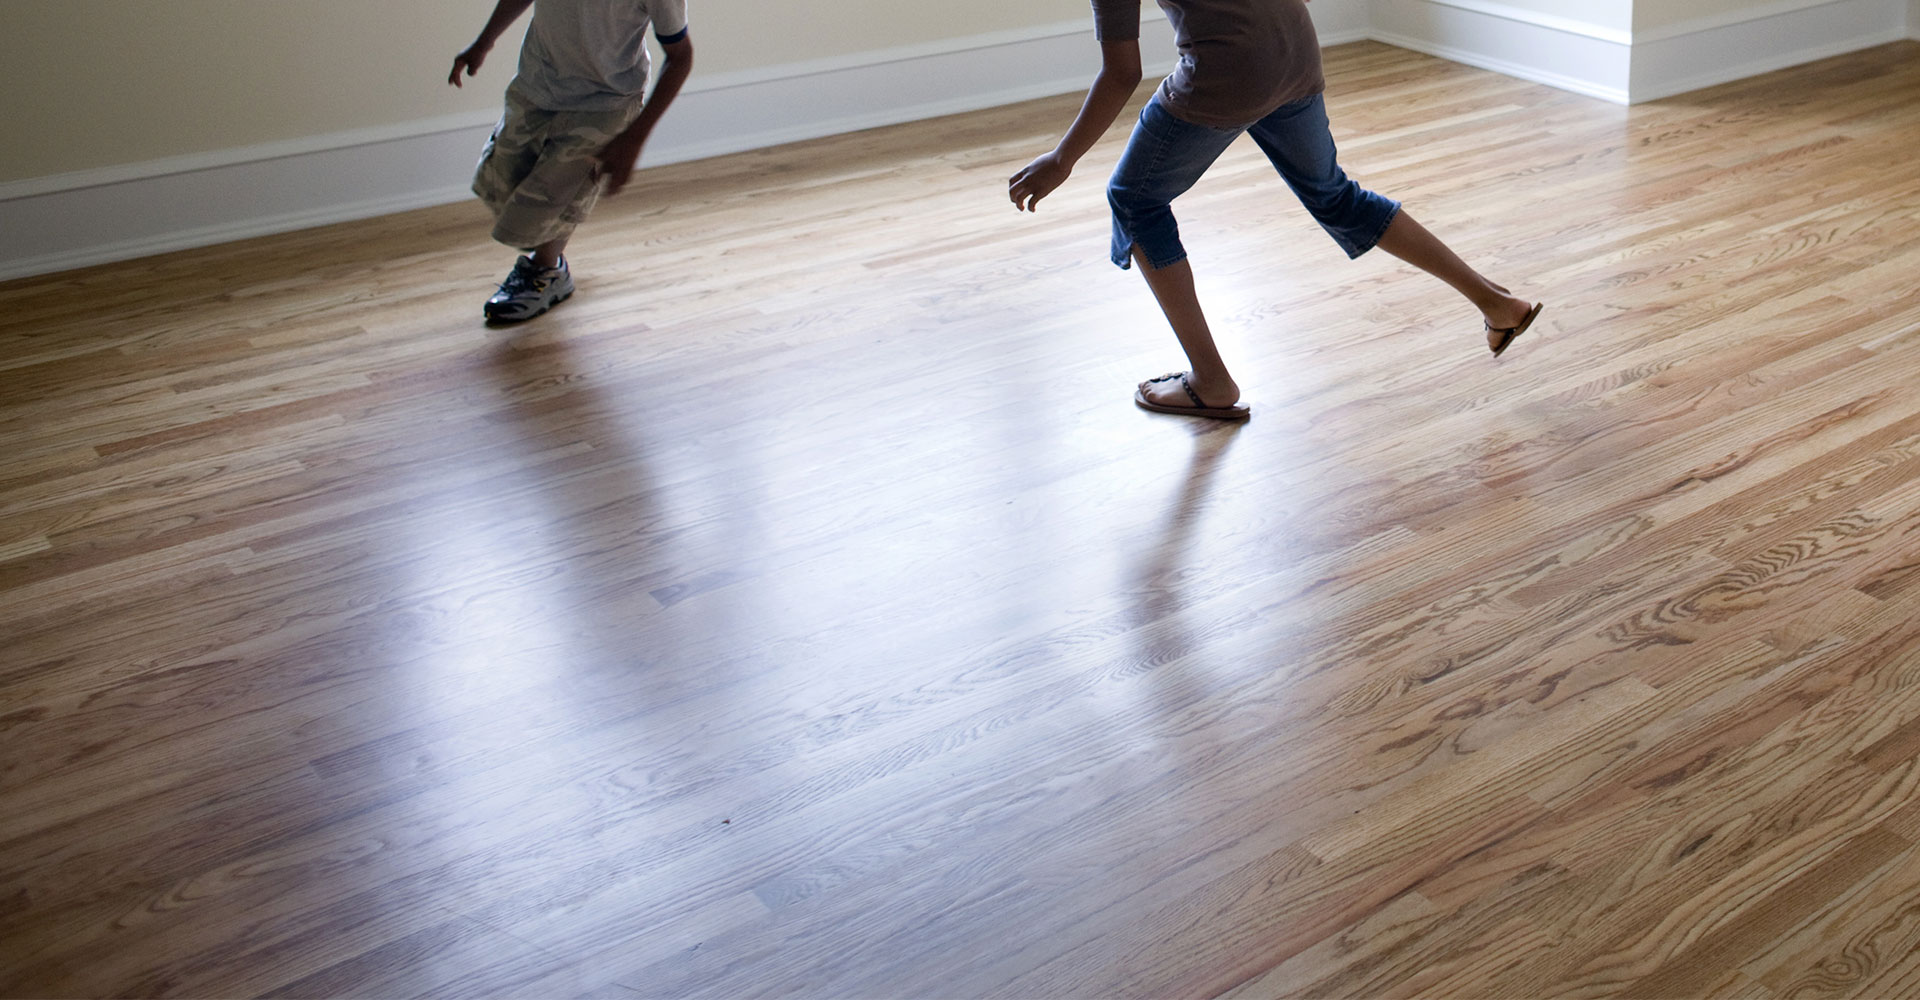 Home | Pittsburgh Hardwood Flooring, Laminate Flooring and Hardwood ...